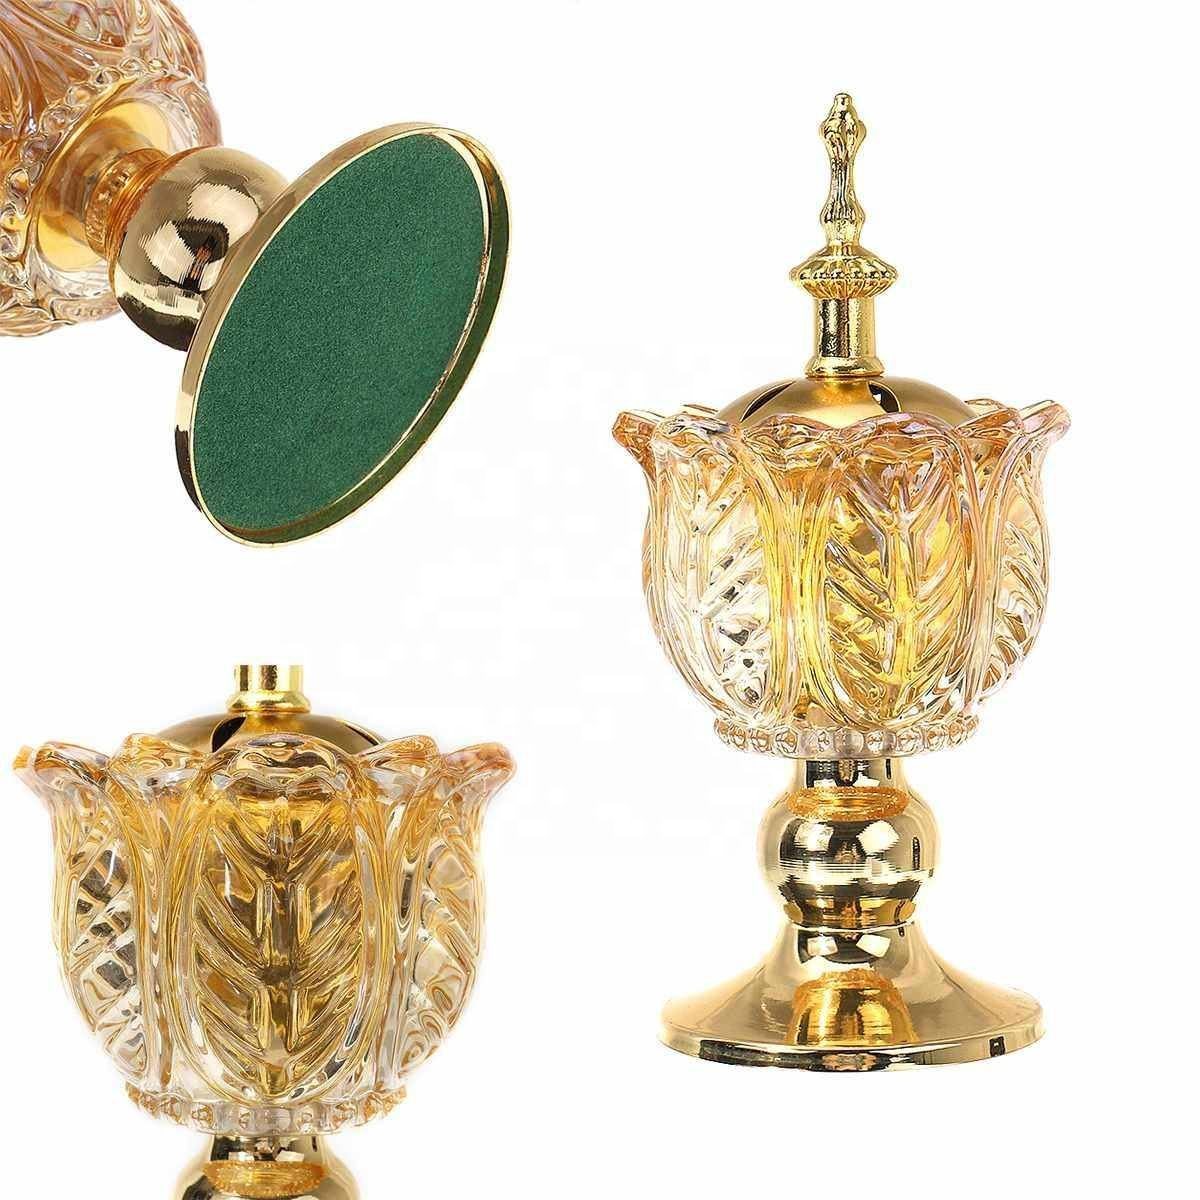 Arabian Crystal Incense burner Hollowed Essential Oil Lamp Burner Floral Decorated Desk Lamp Home Decoration